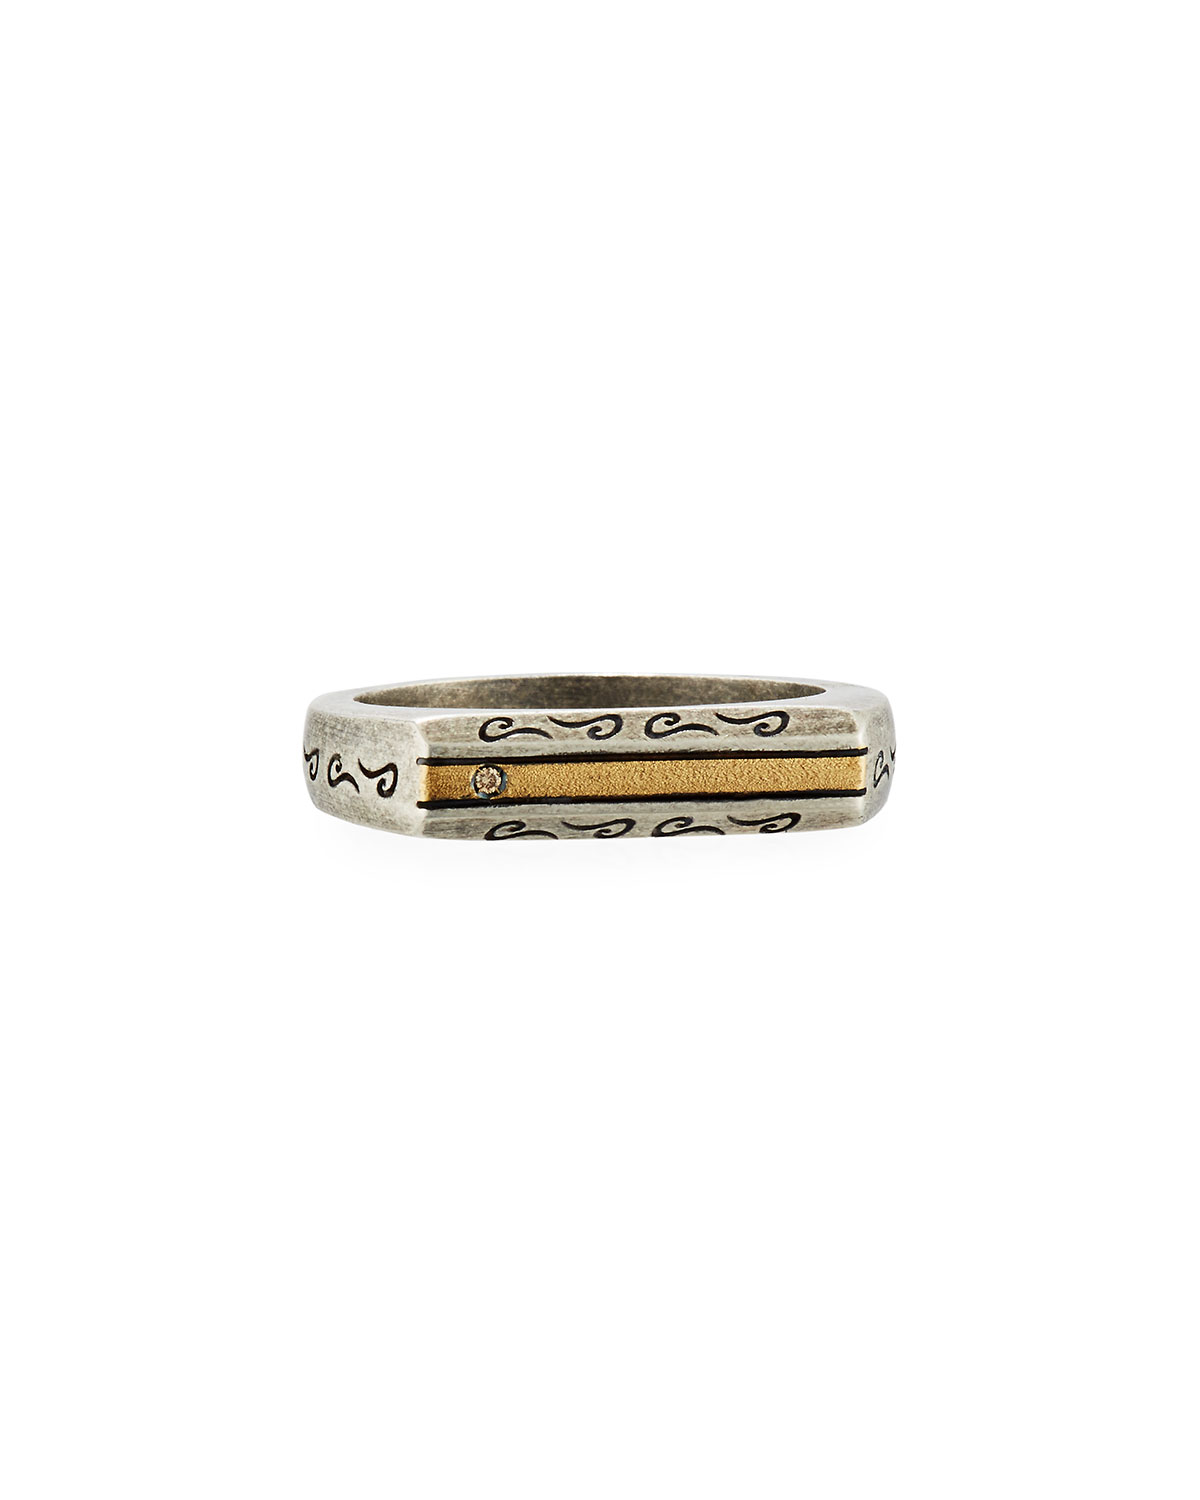 MARCO DAL MASO Ara Oxidized Silver & 18K Ring With Champagne Diamond, Size 10